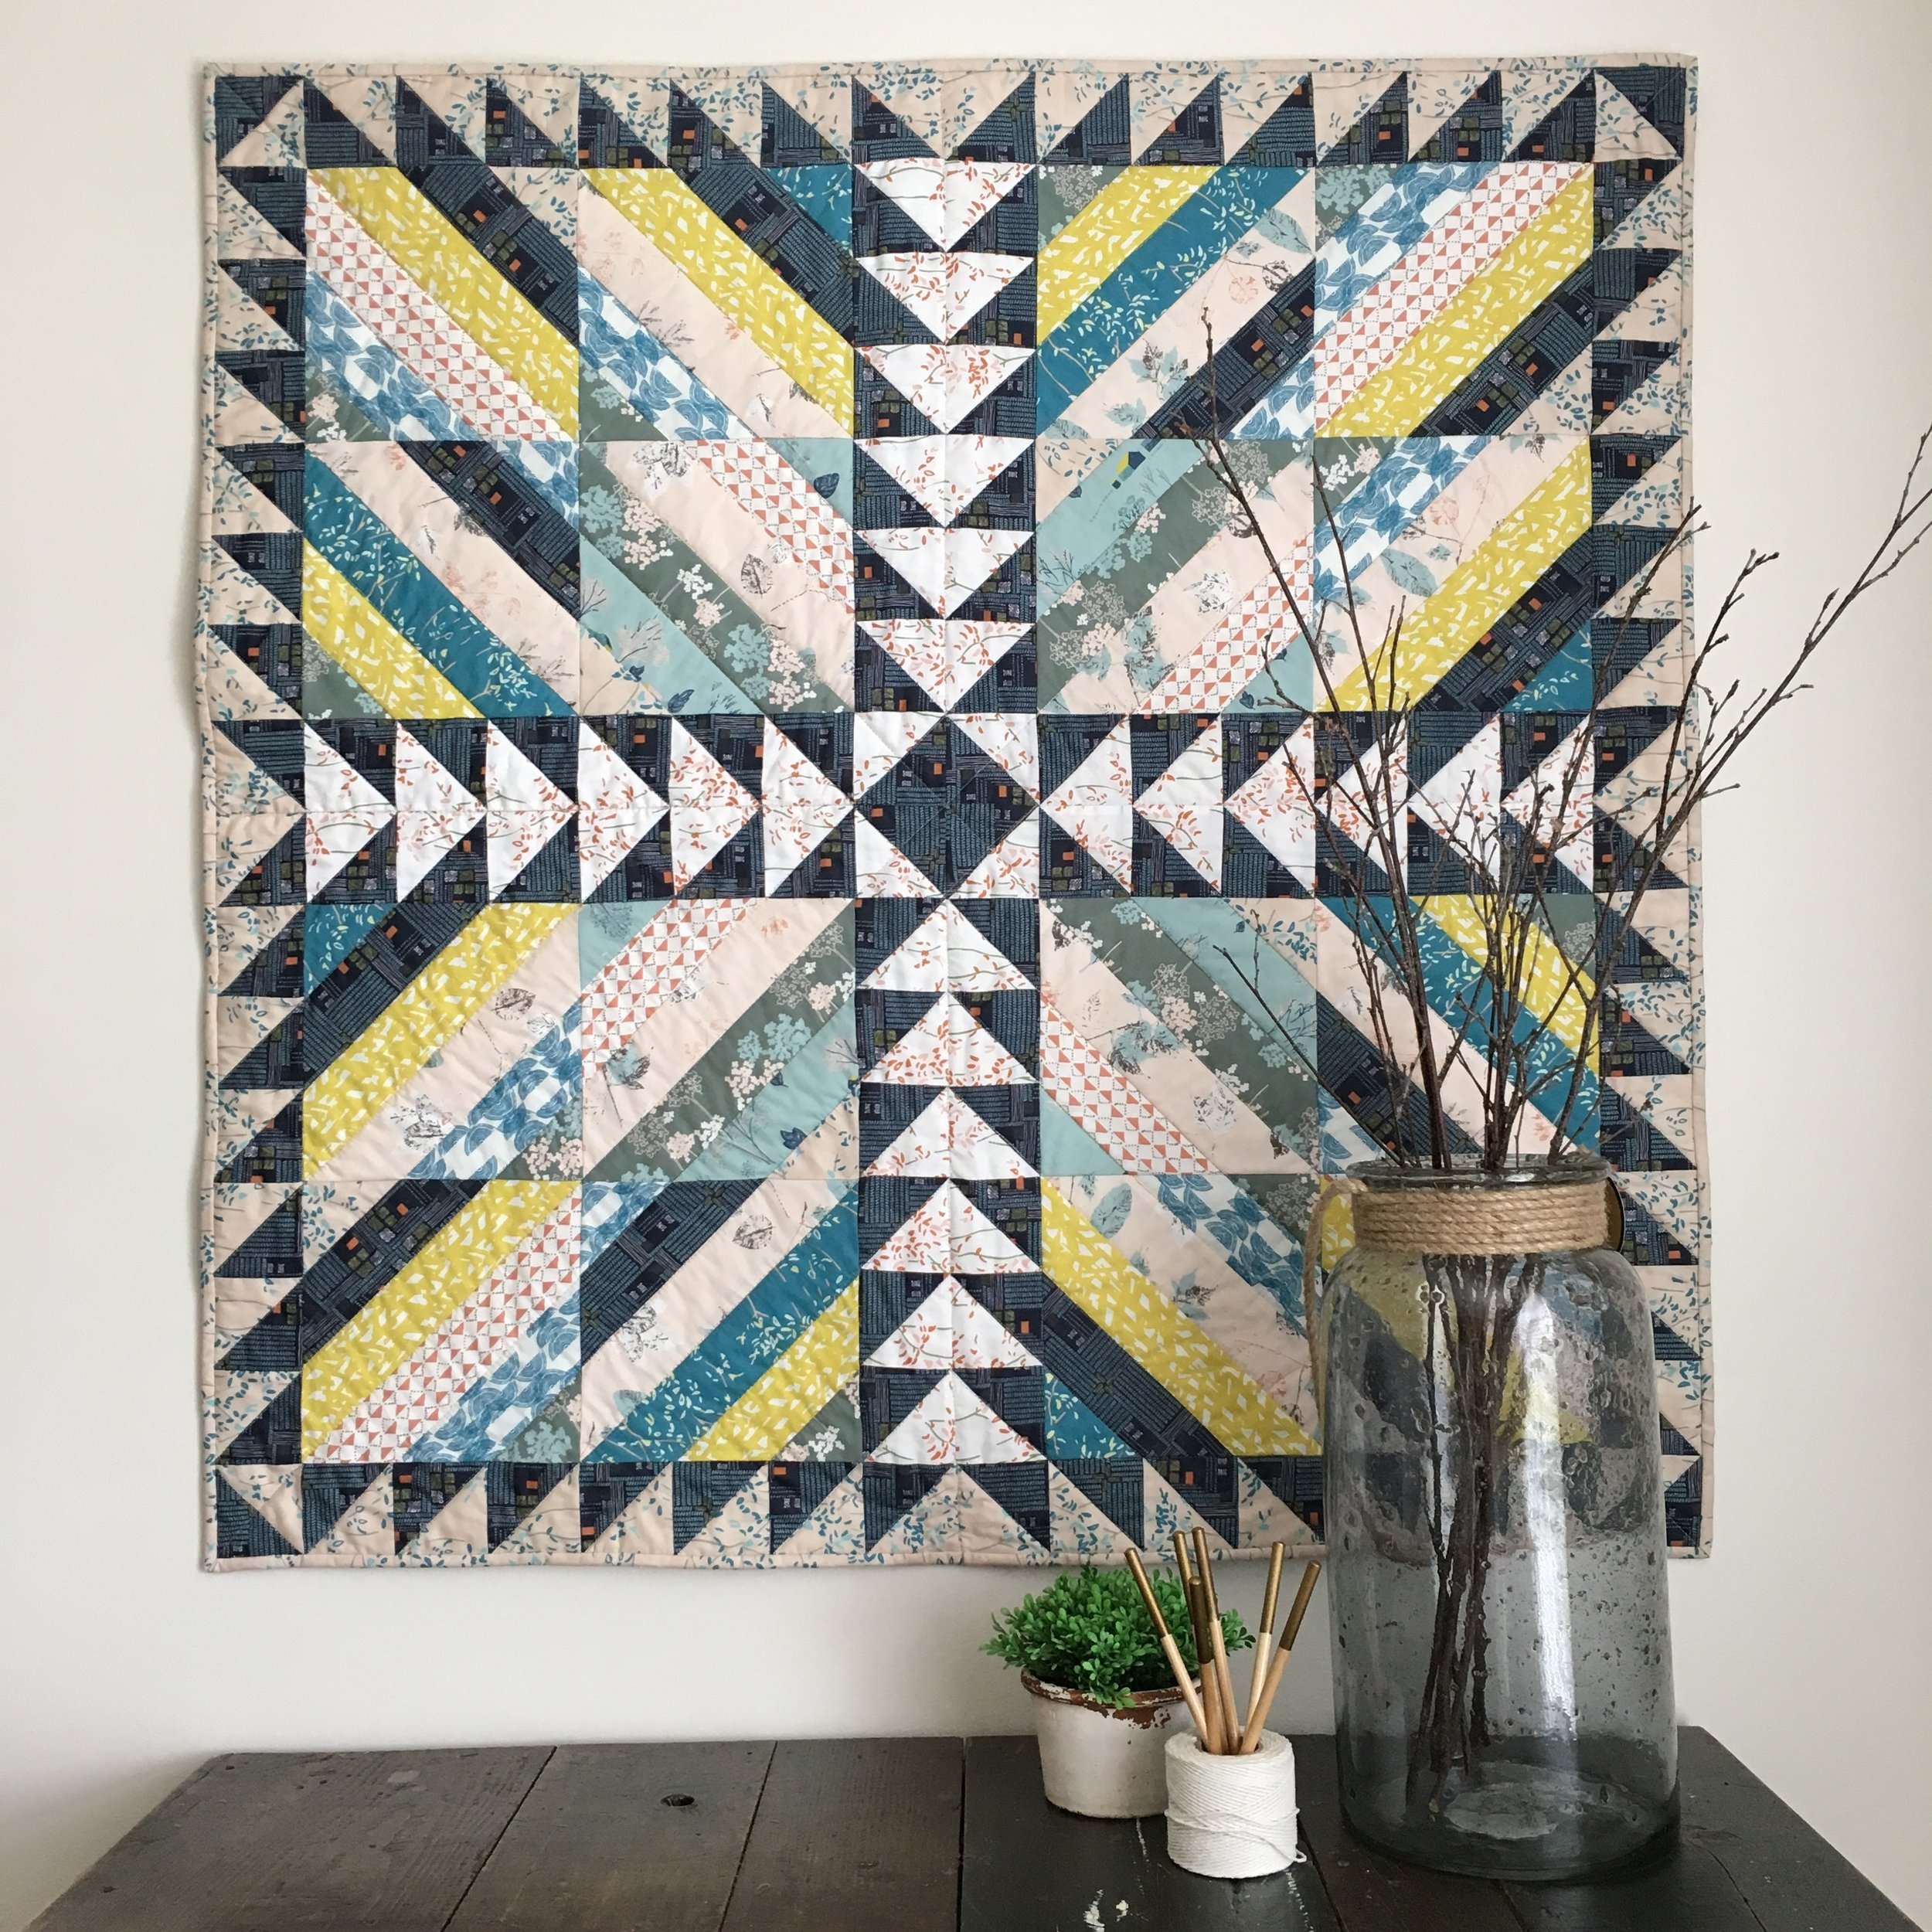 Photo and quilt by Sharon Holland